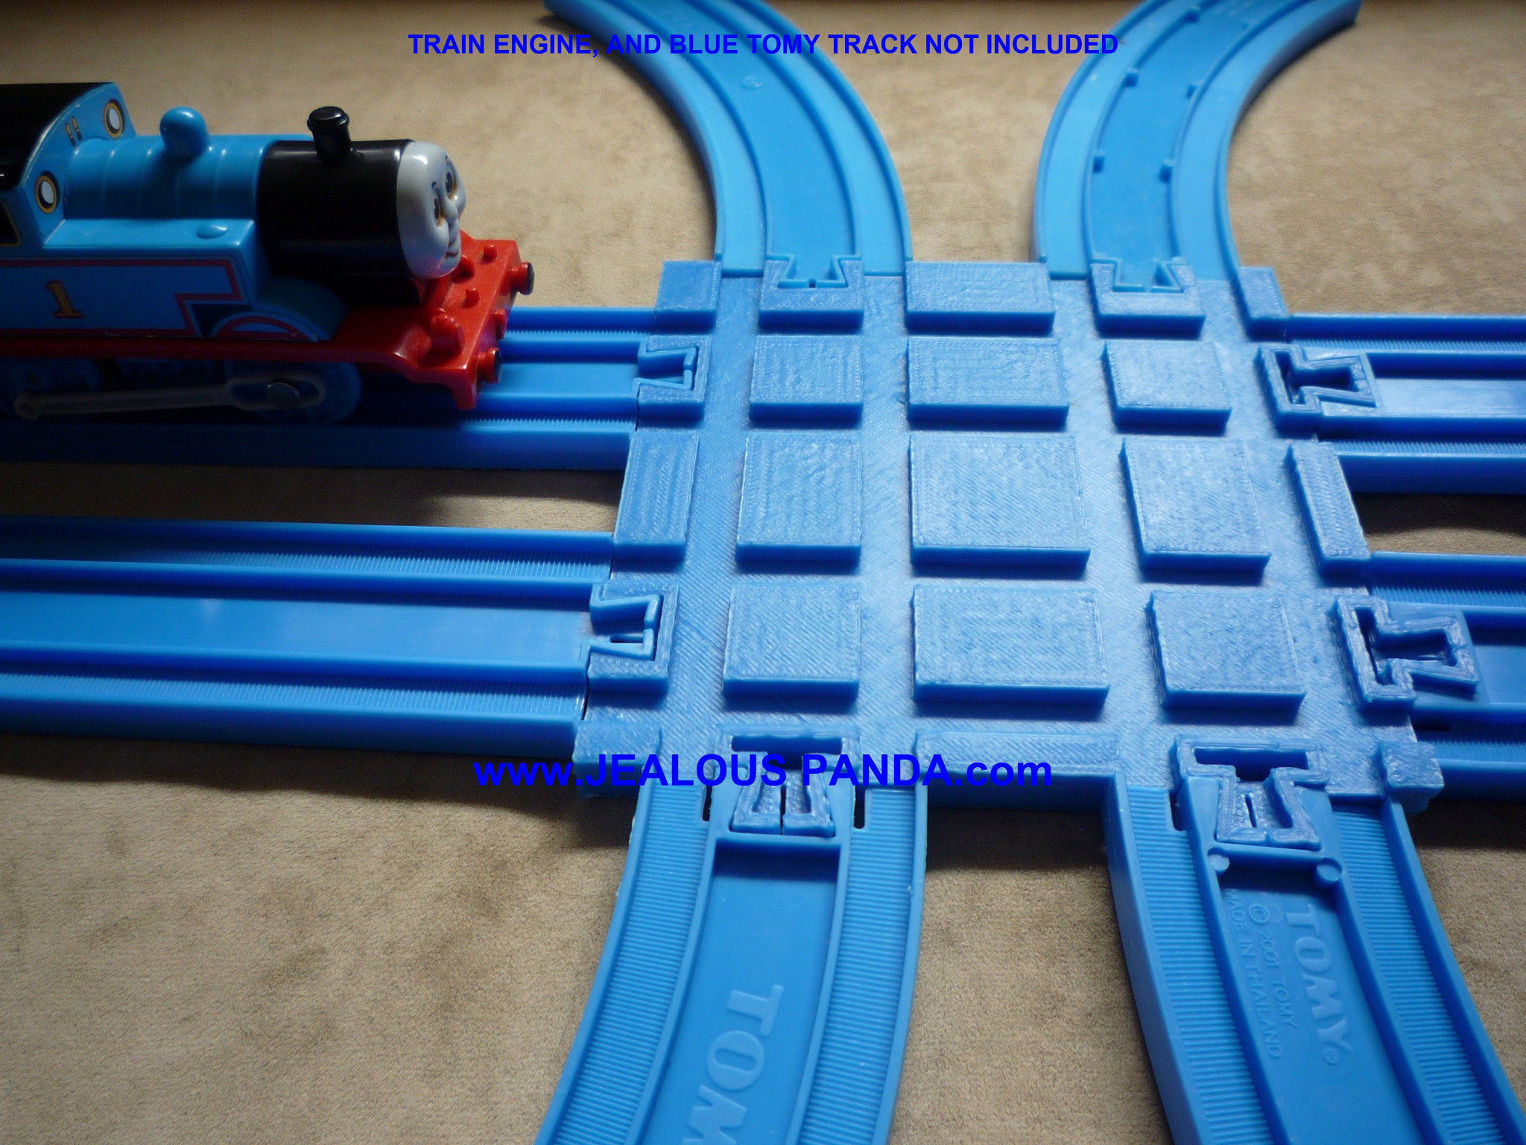 tomy thomas track instructions